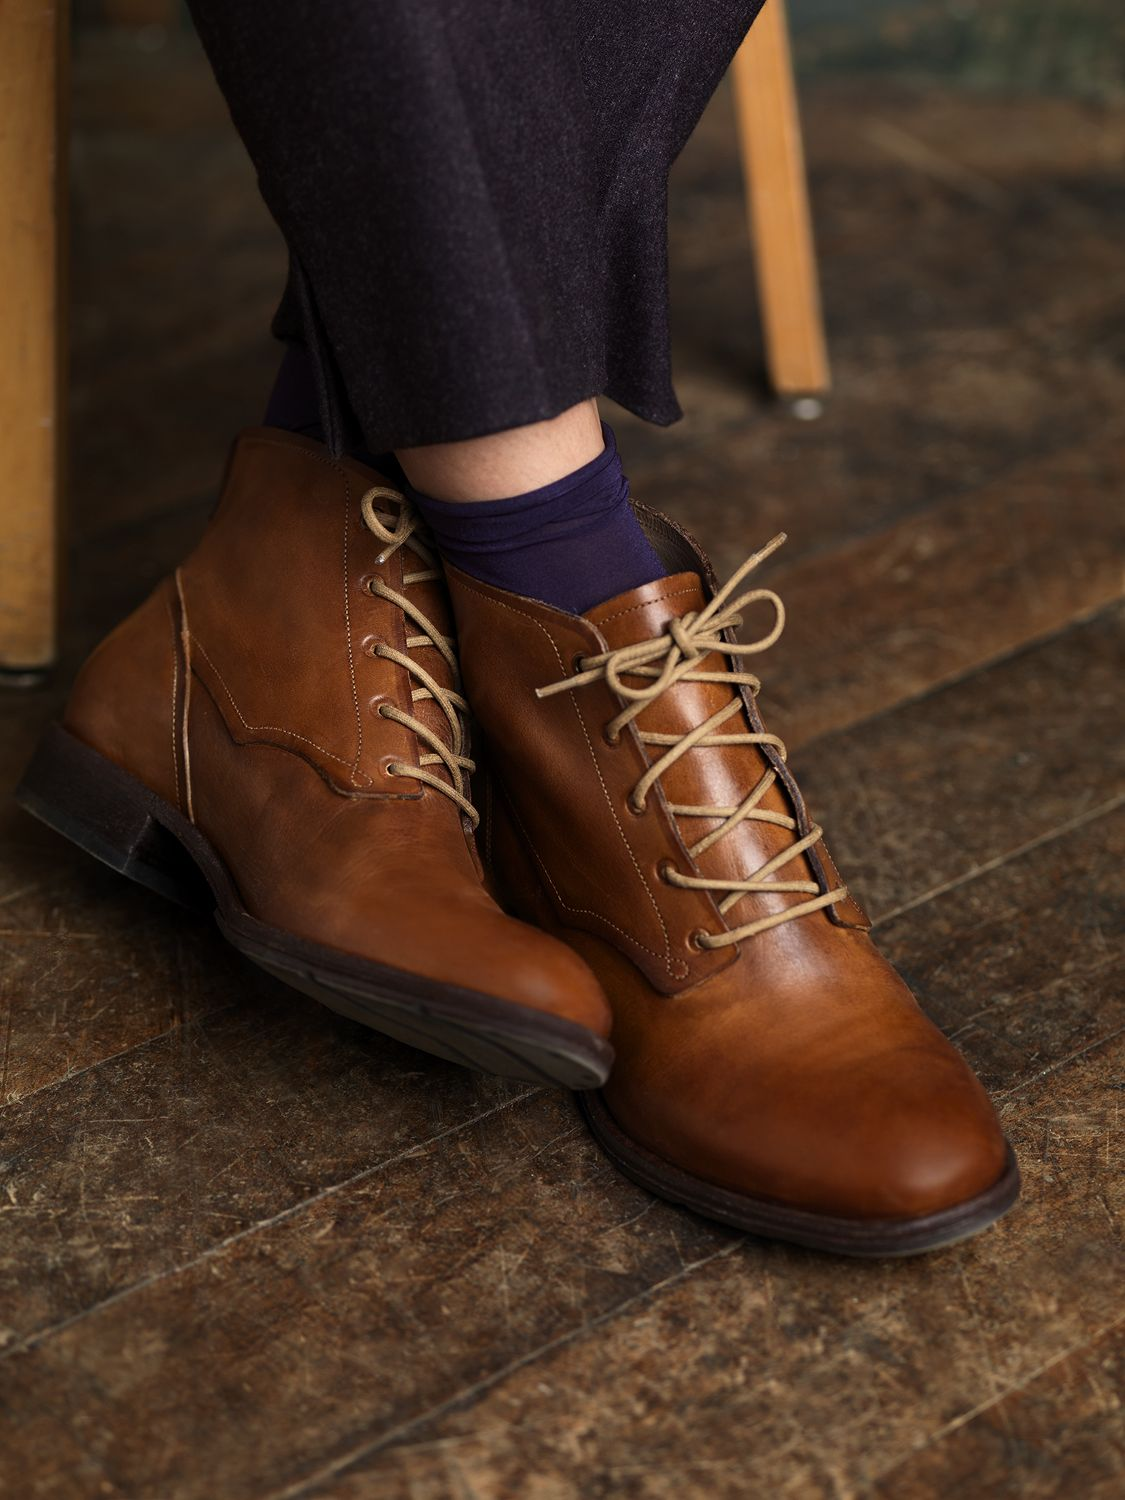 7373c8f0004 Womens Hiking Boots, Tall Boots & Ankle Boots | Timberland.com in ...